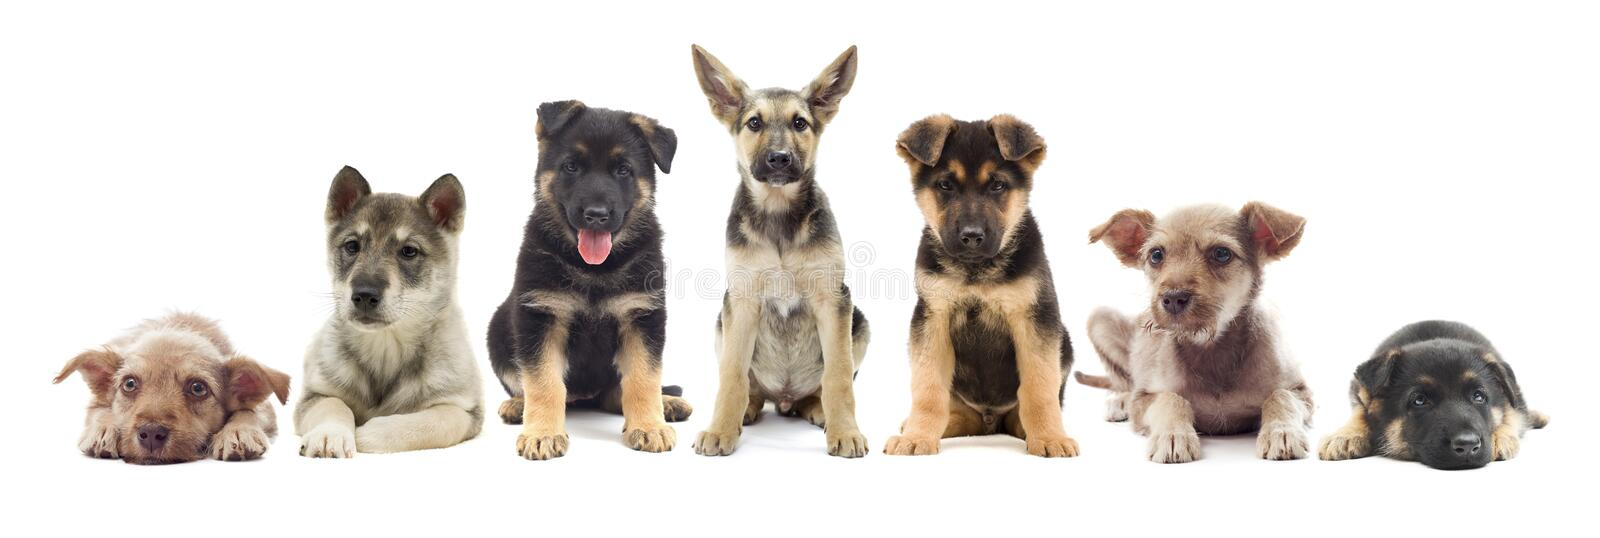 Set of puppies. On a white background royalty free stock image